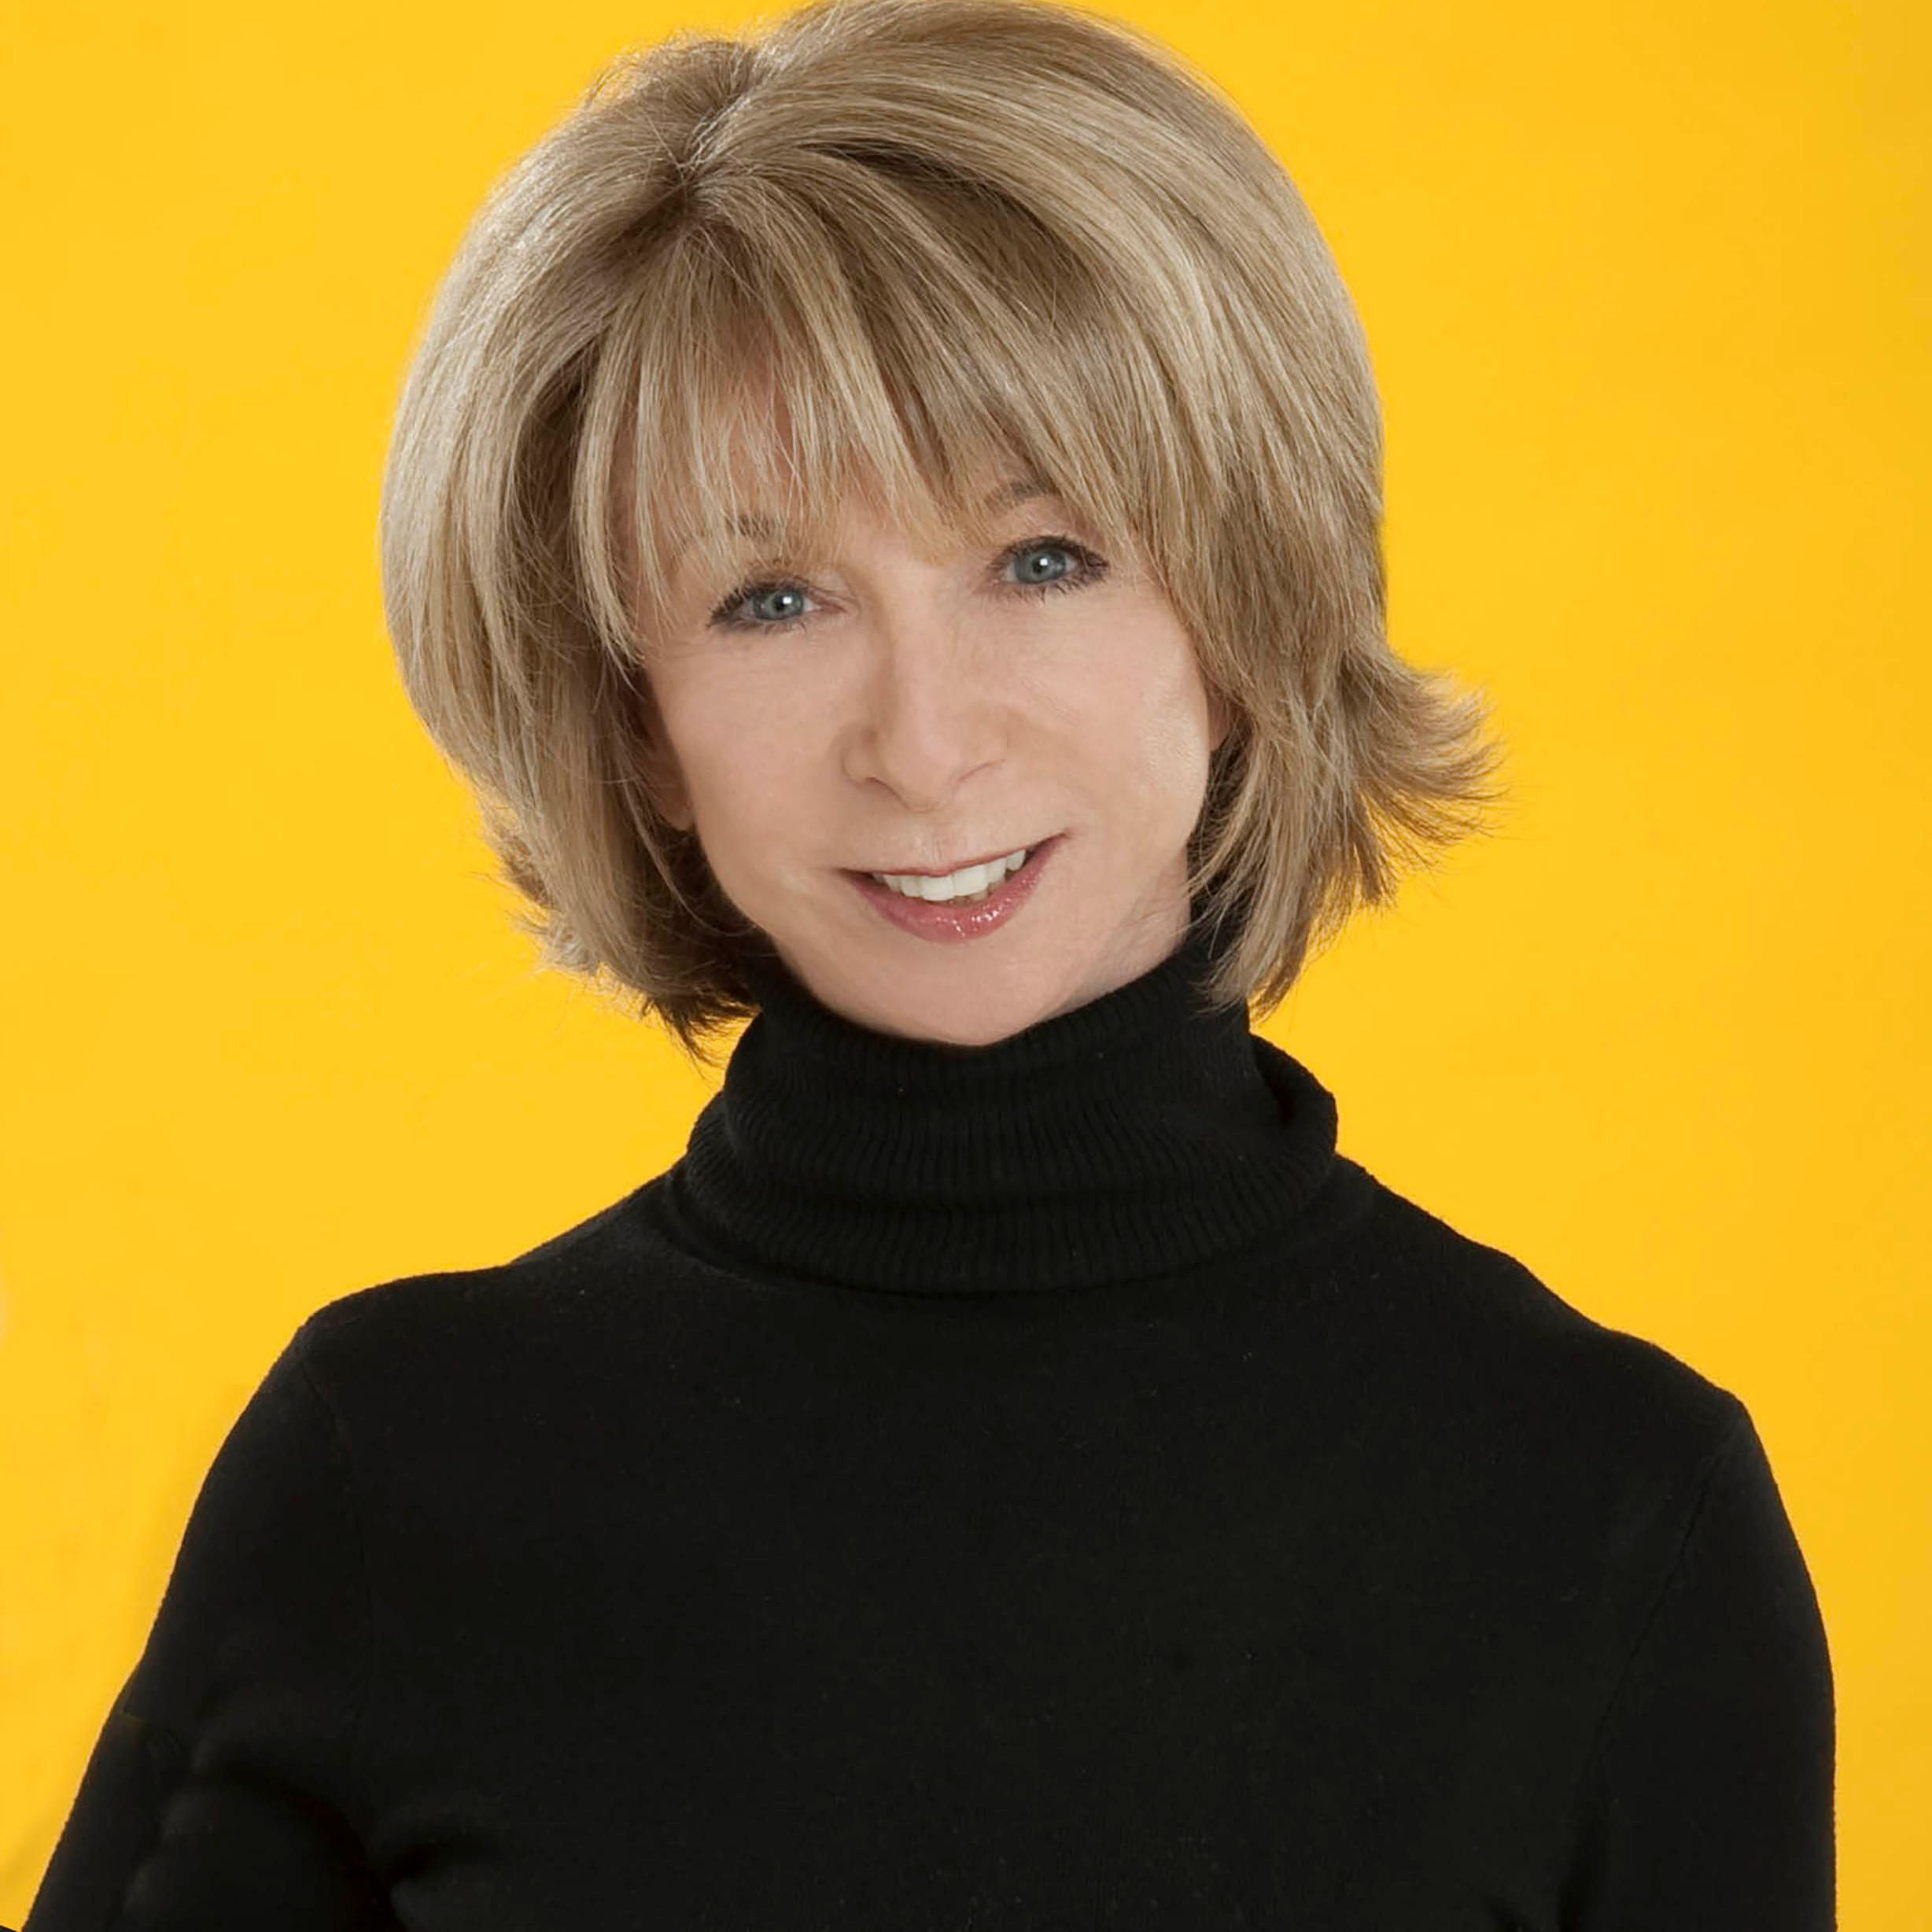 Coronation Street boss reveals Gail Rodwell's return storyline was changed